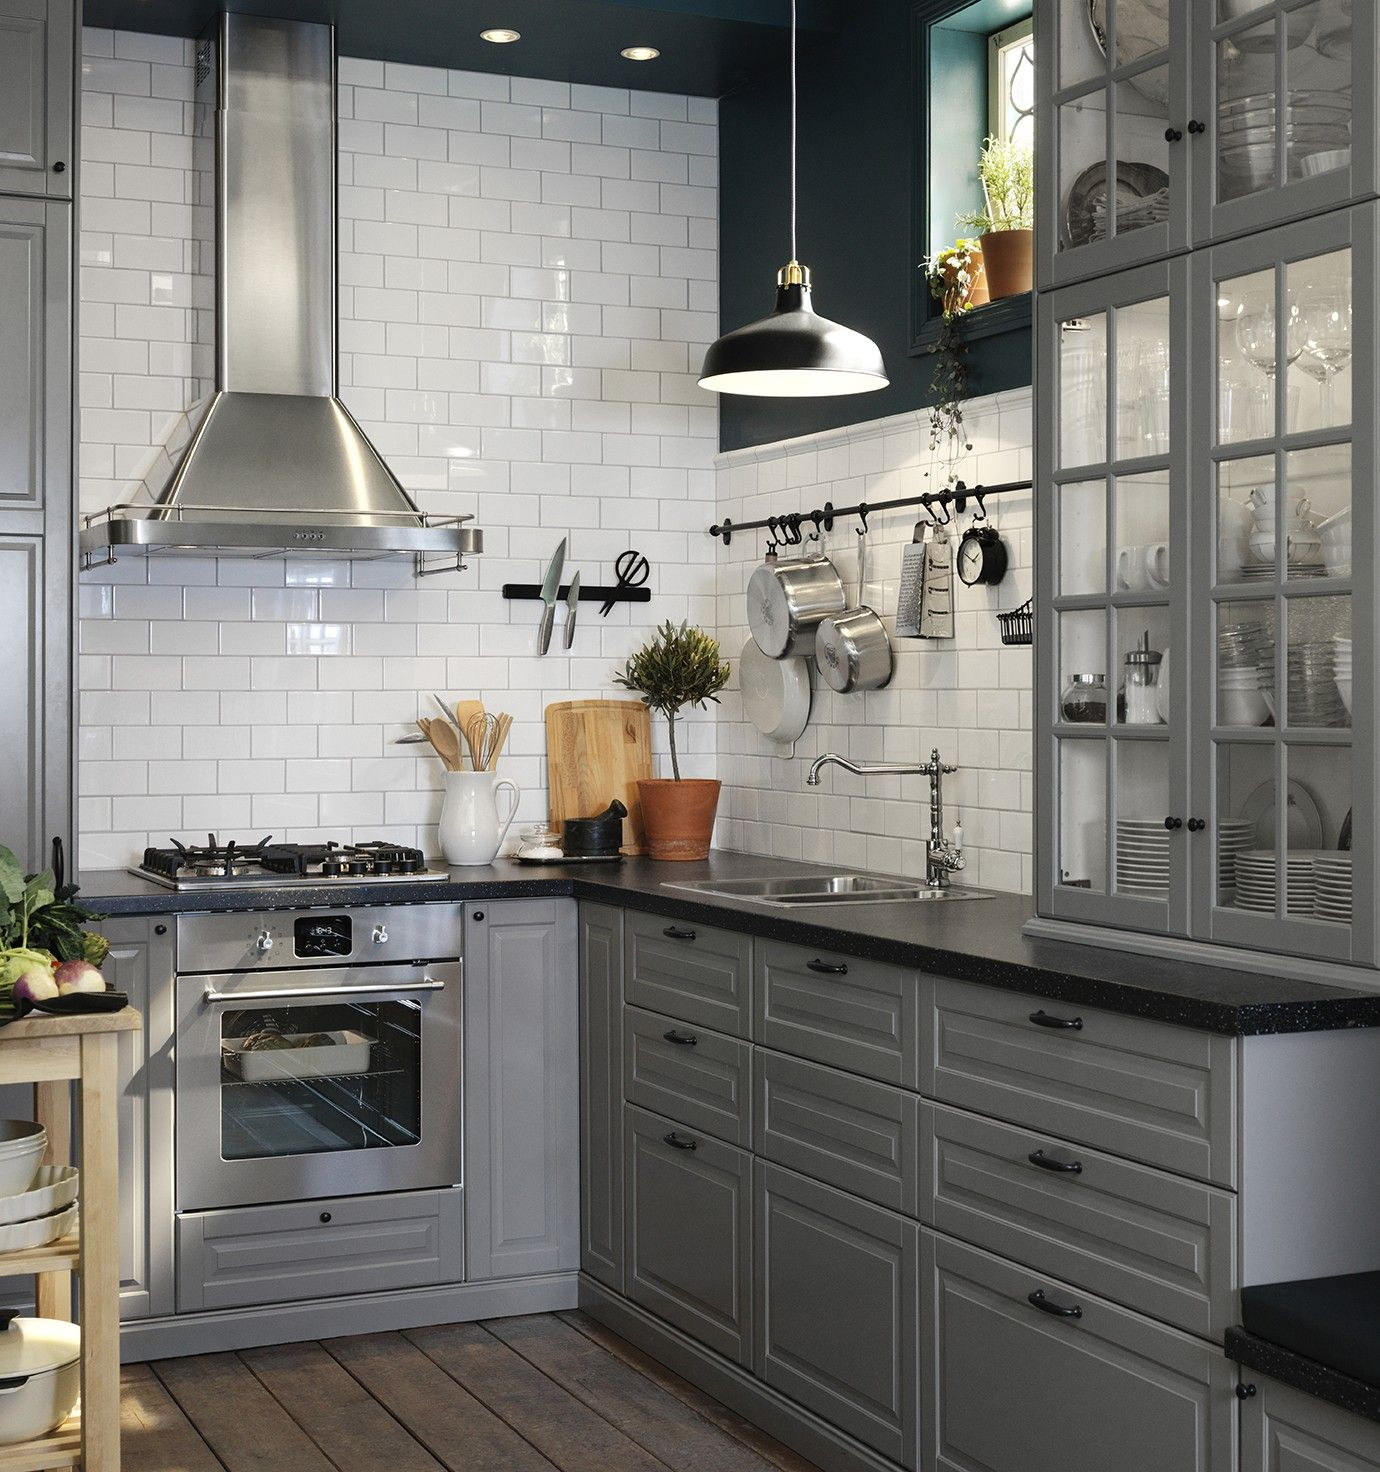 Ikea Kitchen Design Blog Ikea Dream Kitchen 2018 Kitchen 2018